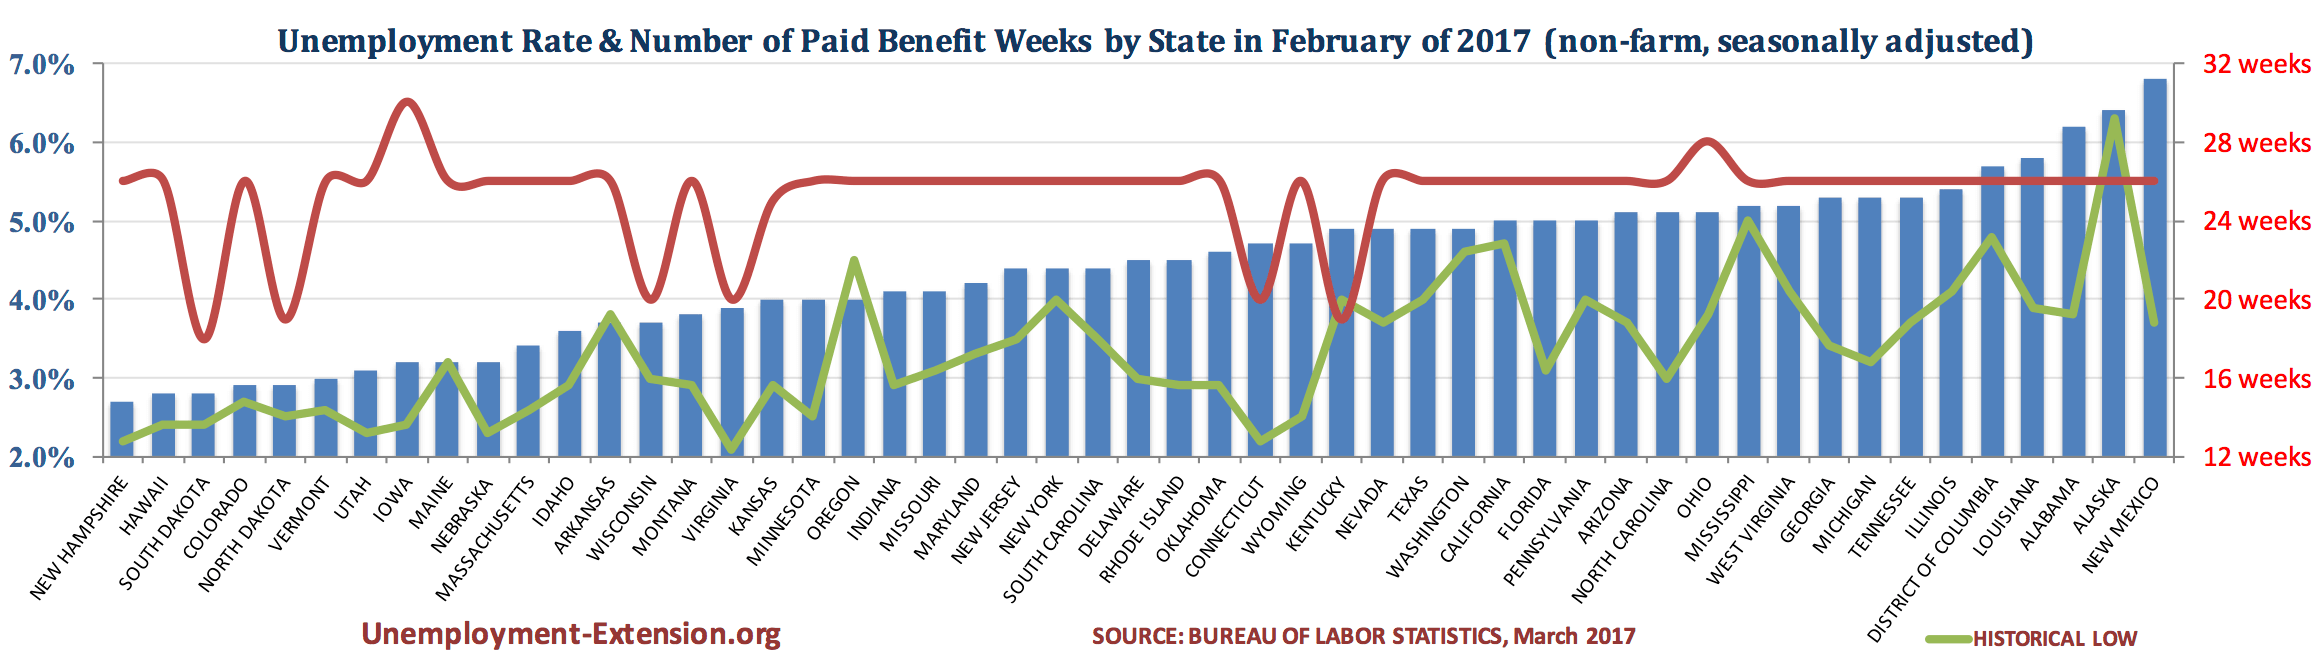 Unemployment Seasonally Adjusted February Benefit Nonfarm